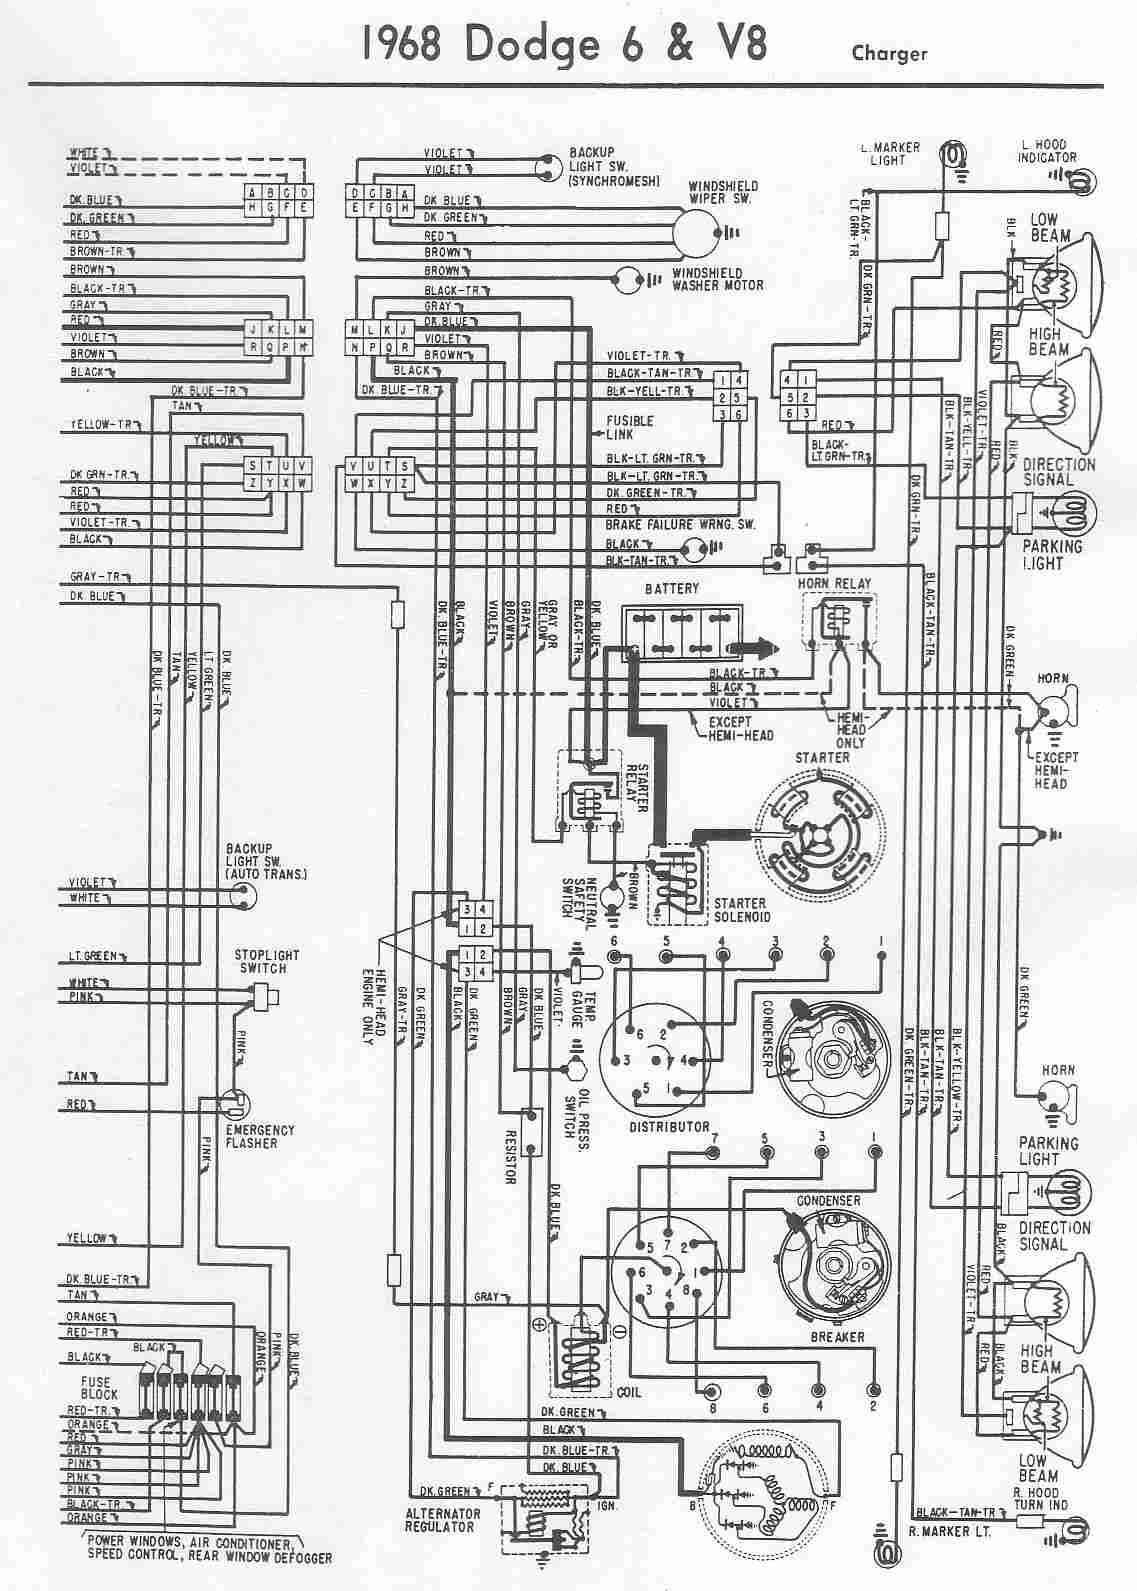 Dodge Car Manuals Wiring Diagrams Pdf Fault Codes 1986 International Truck Diagram Download